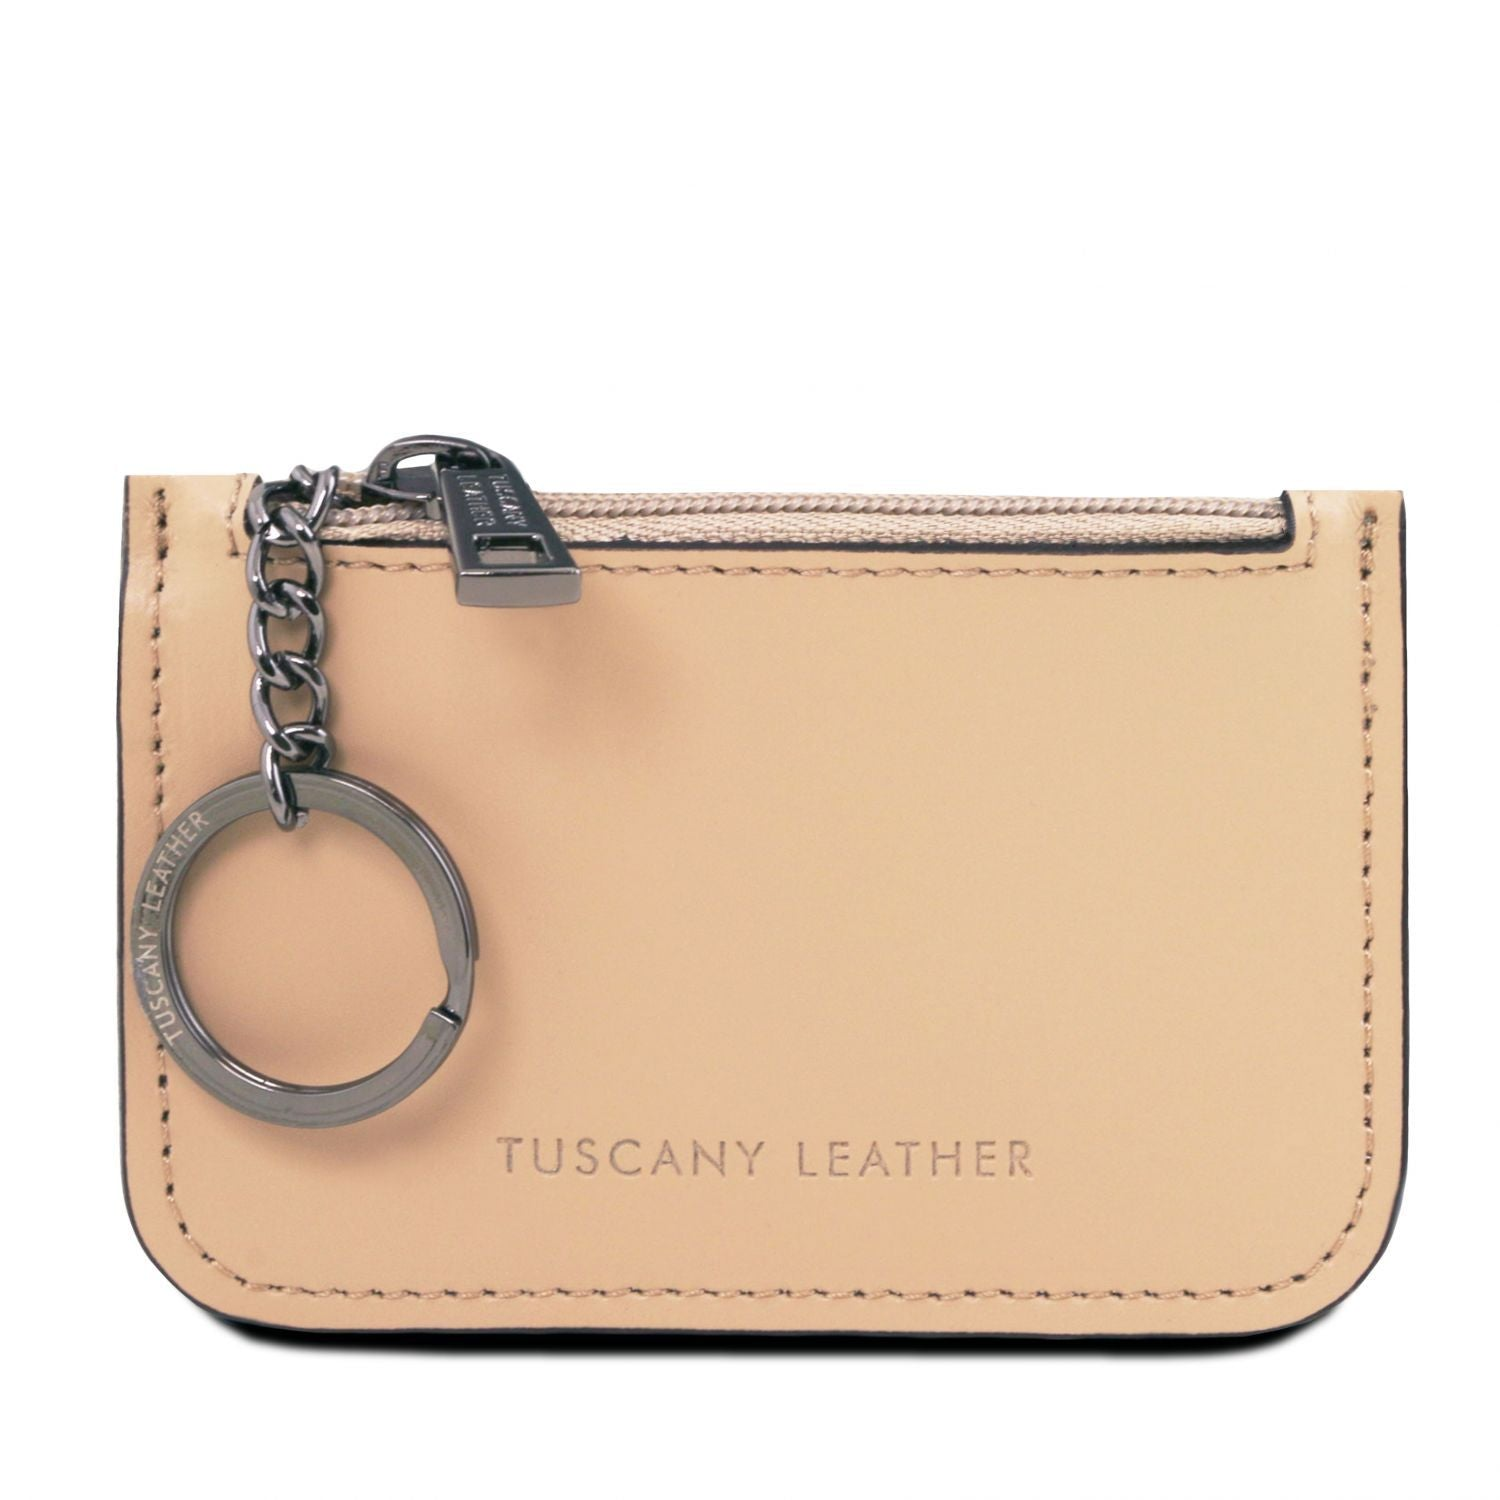 Leather key holder (TL141671) - Free time leather accessories | DILUSSOBAGS